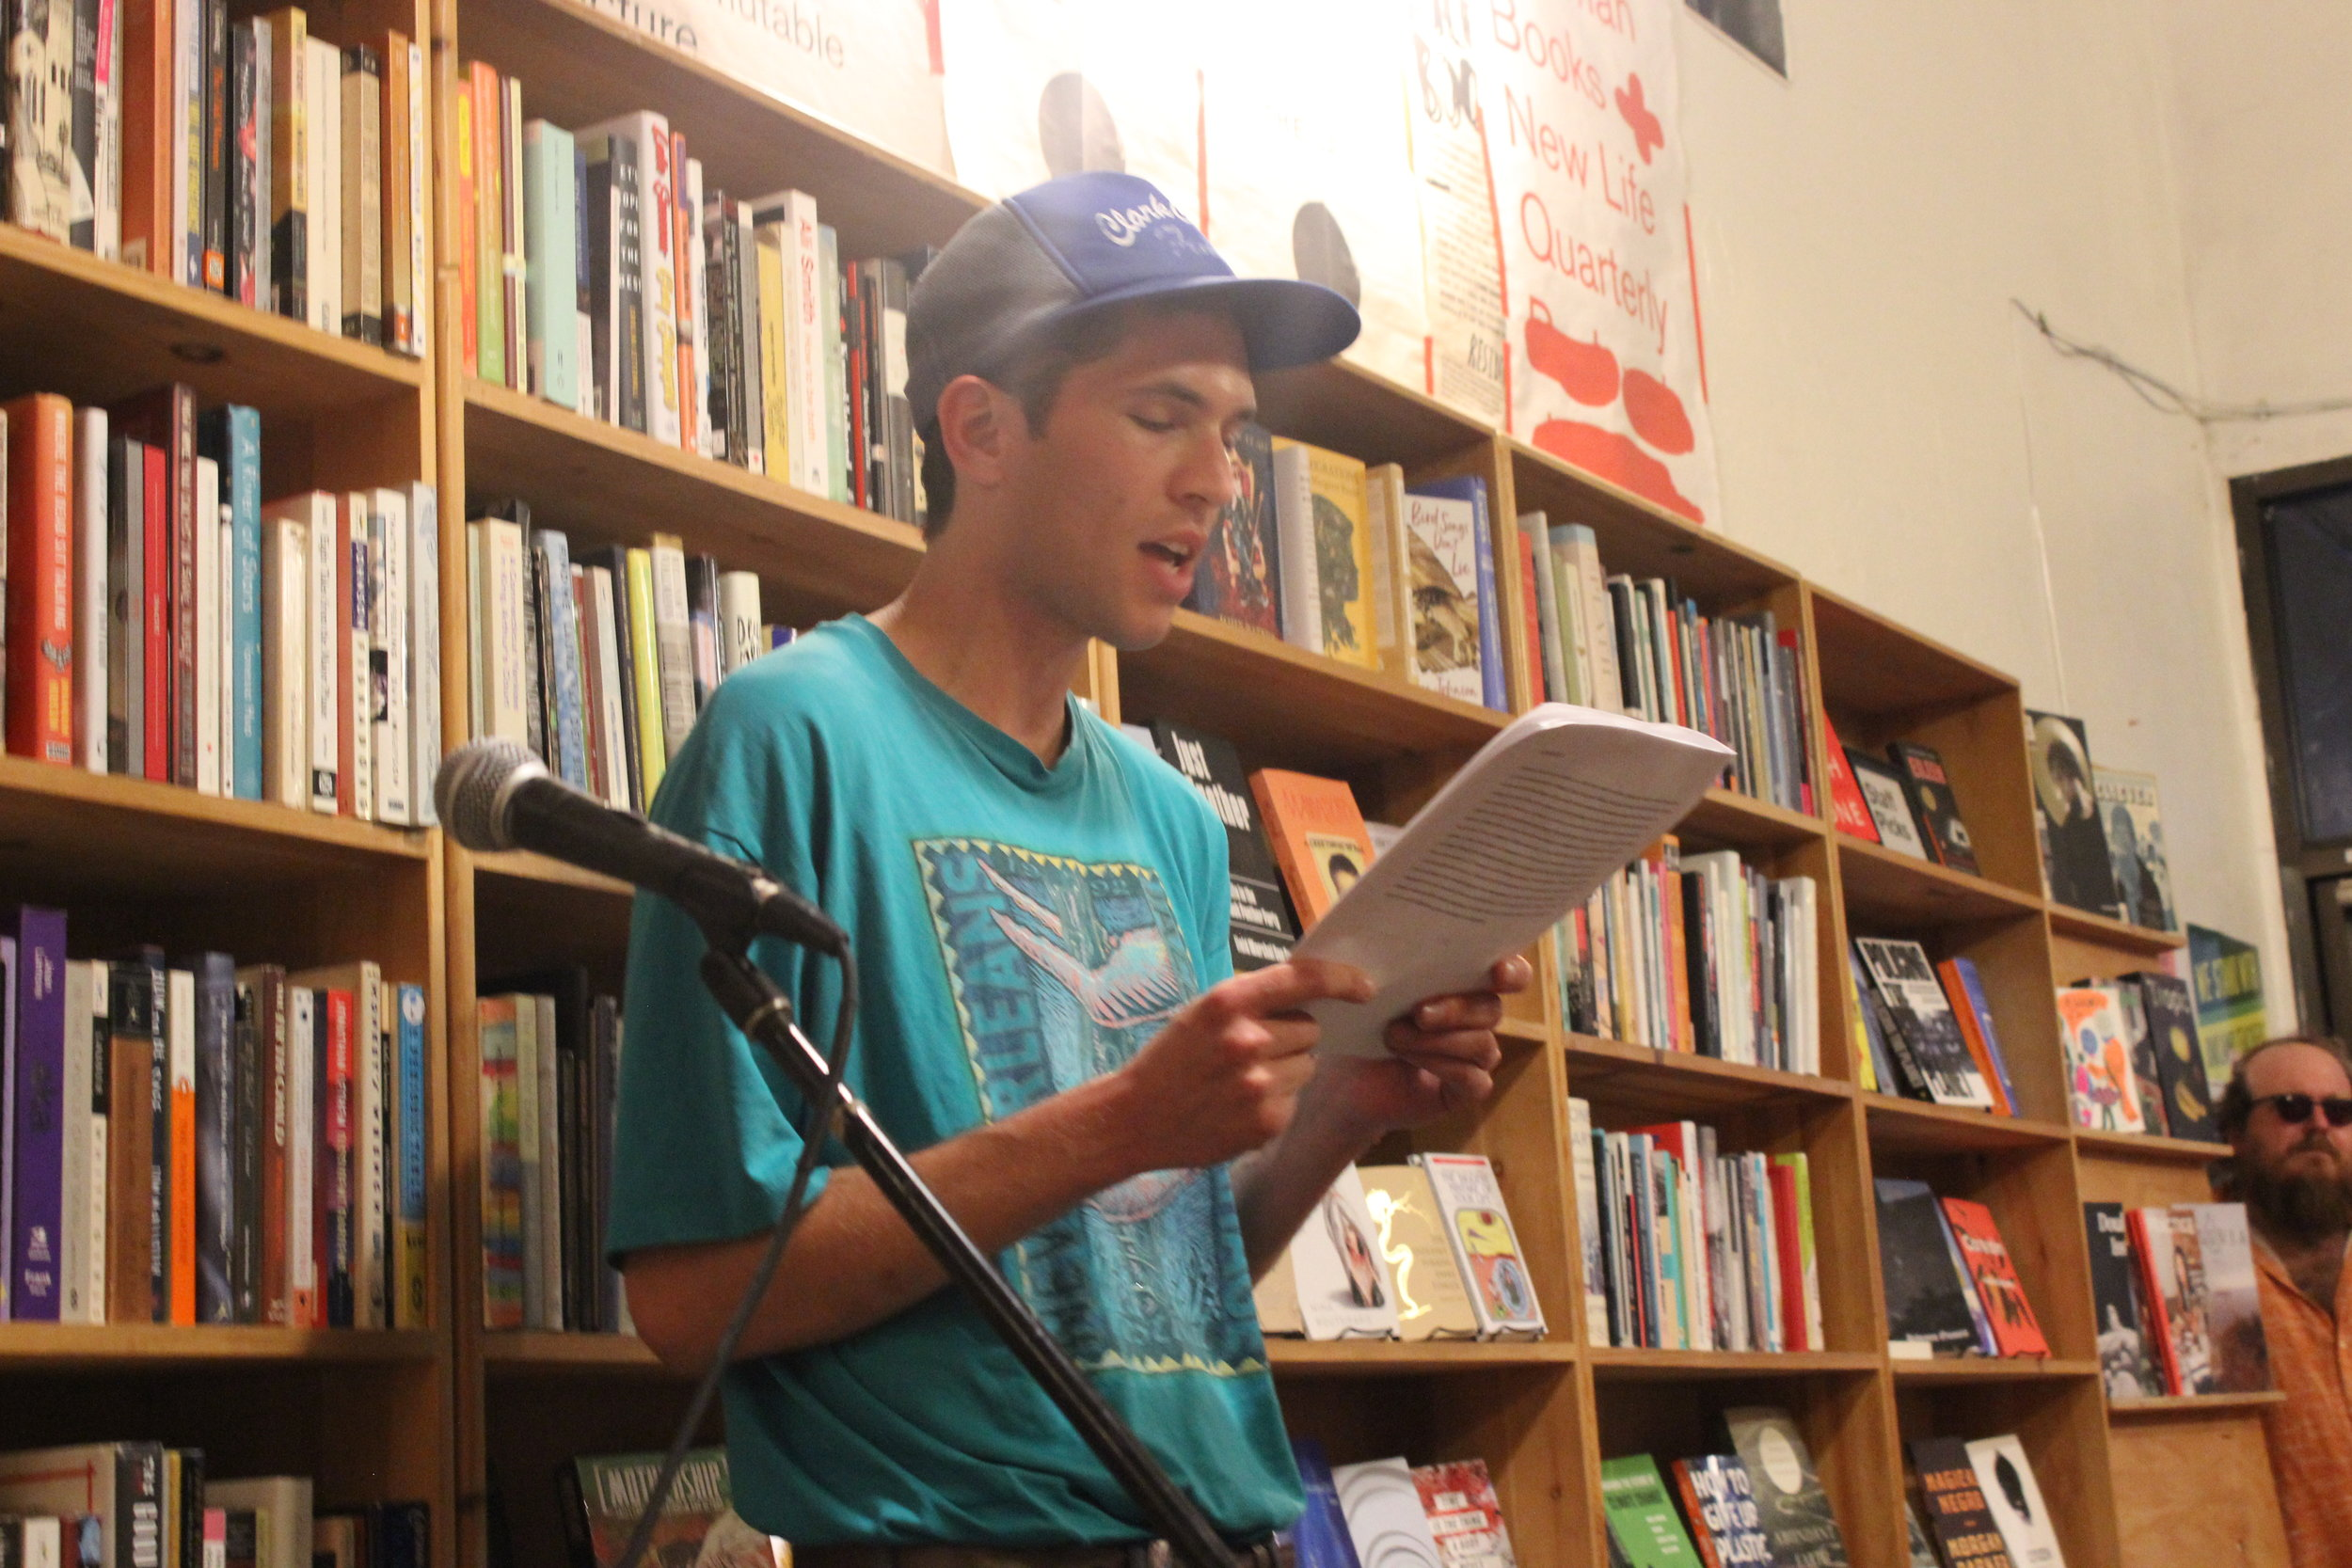 Peter Myers Reads poetry at Wolfman Books on August 14th 2019 in a reading hosted by Sophia Dahlin